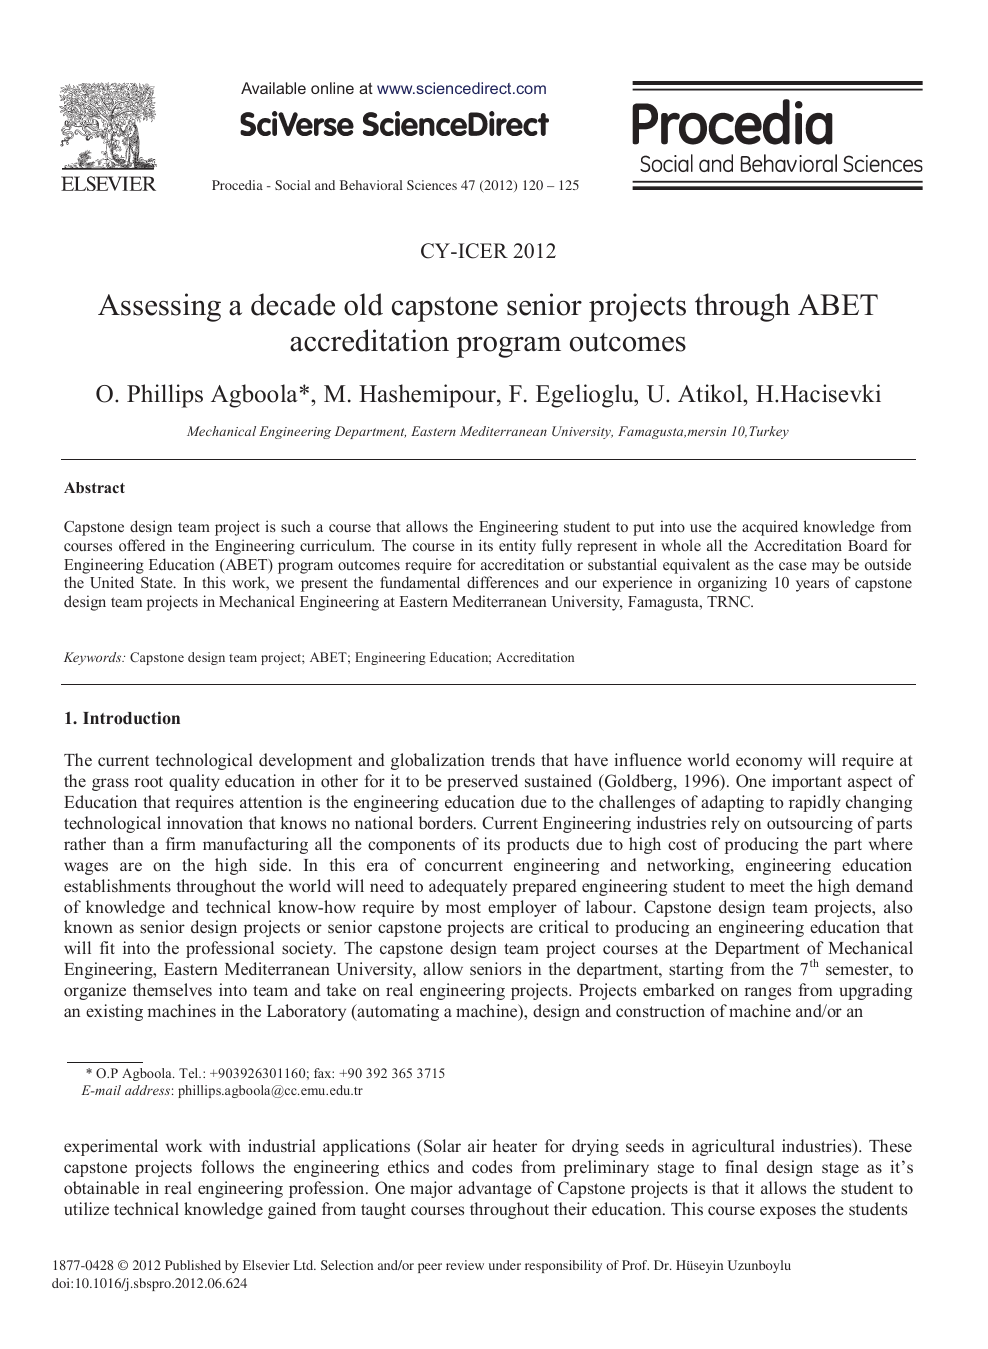 Assessing A Decade Old Capstone Senior Projects Through Abet Accreditation Program Outcomes Topic Of Research Paper In Educational Sciences Download Scholarly Article Pdf And Read For Free On Cyberleninka Open Science